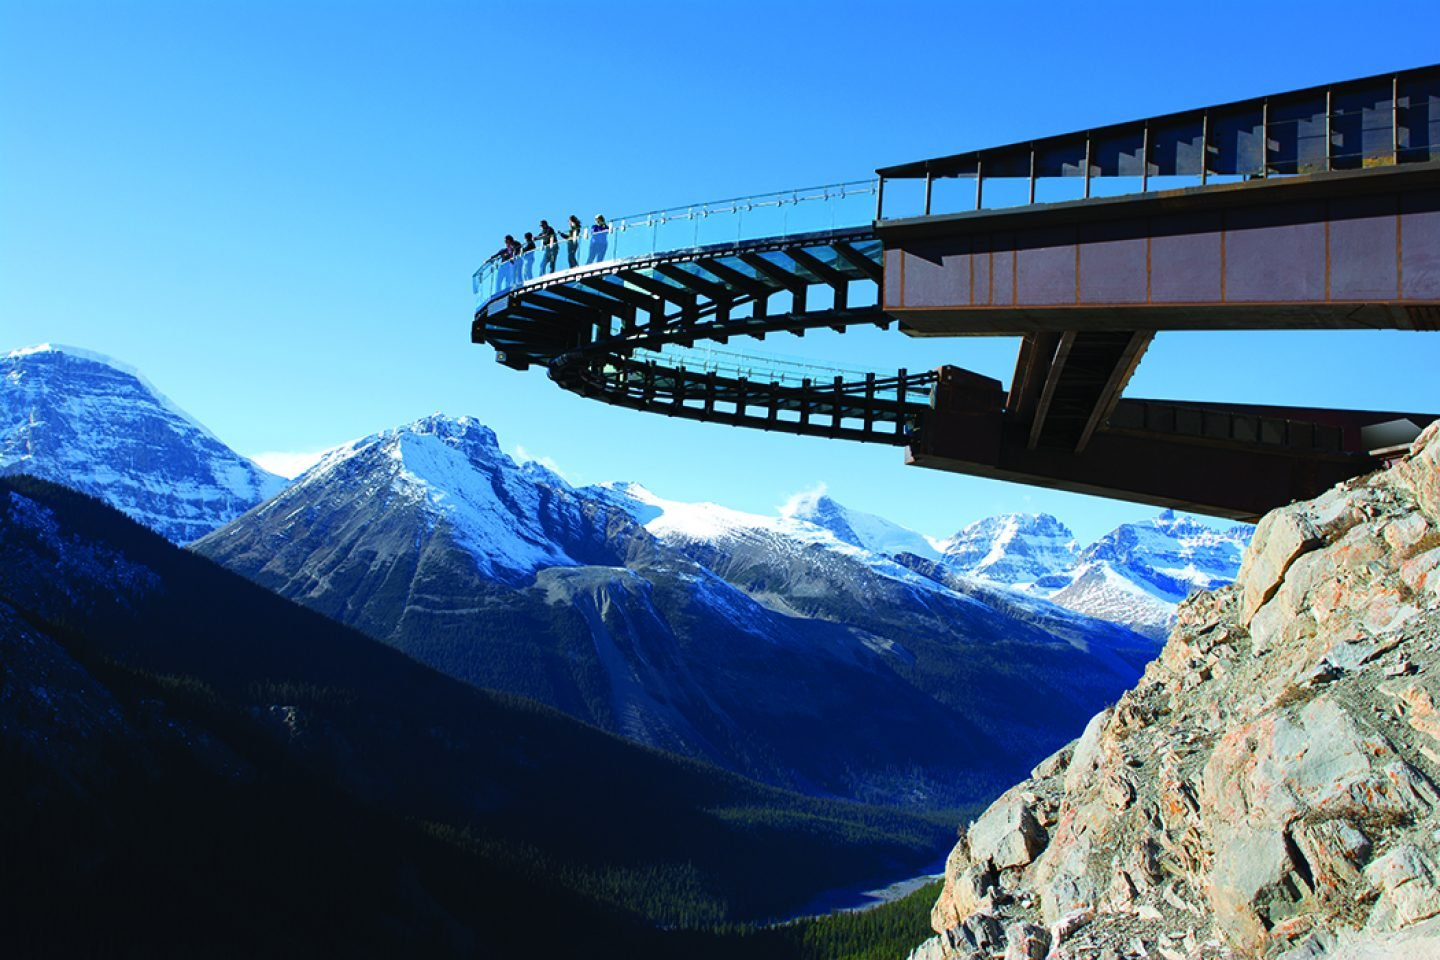 top10viewpoints-Glacier-Skywalk-2013-View-from-below-2